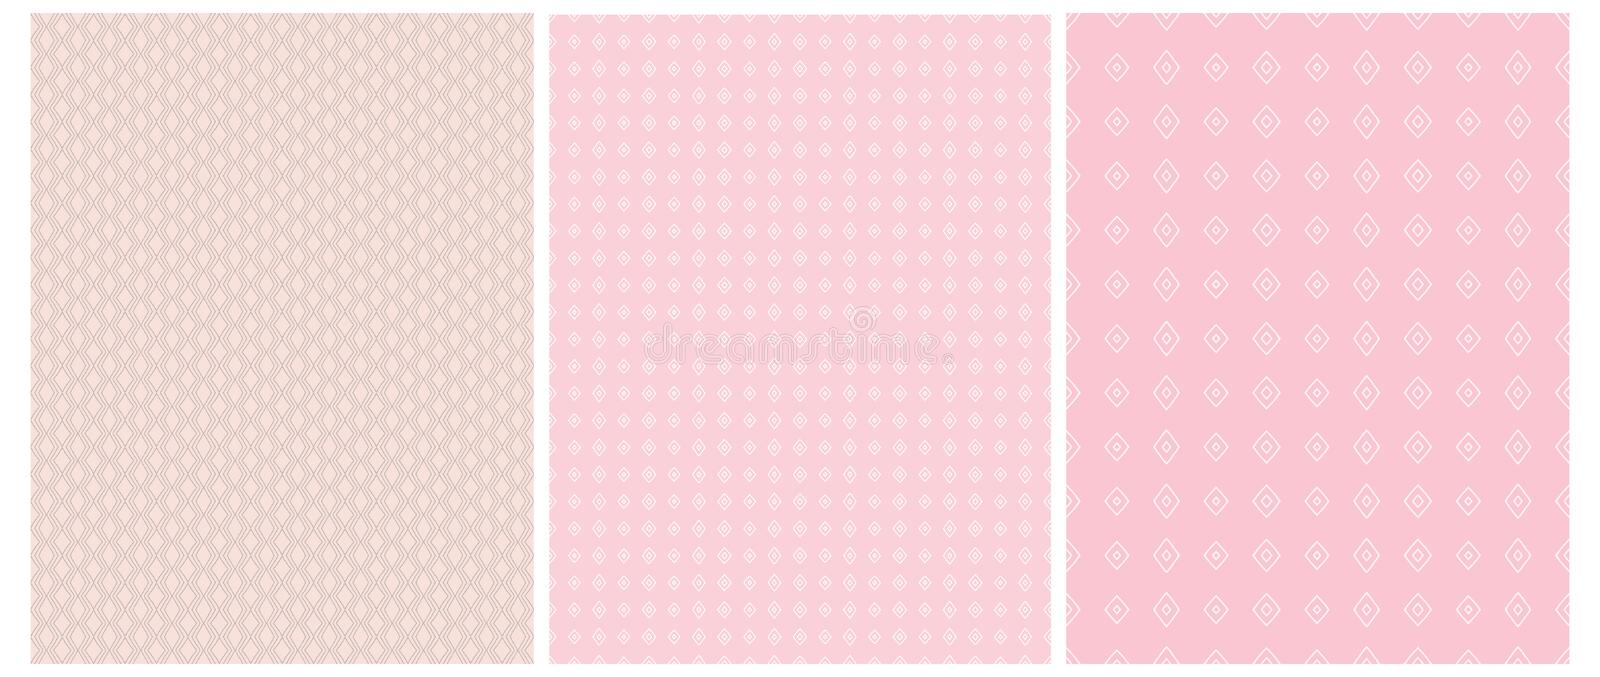 Abstract Geometric Seamless Vector Prints. White Squares Isolated on a Various Pink Backgrounds. stock illustration